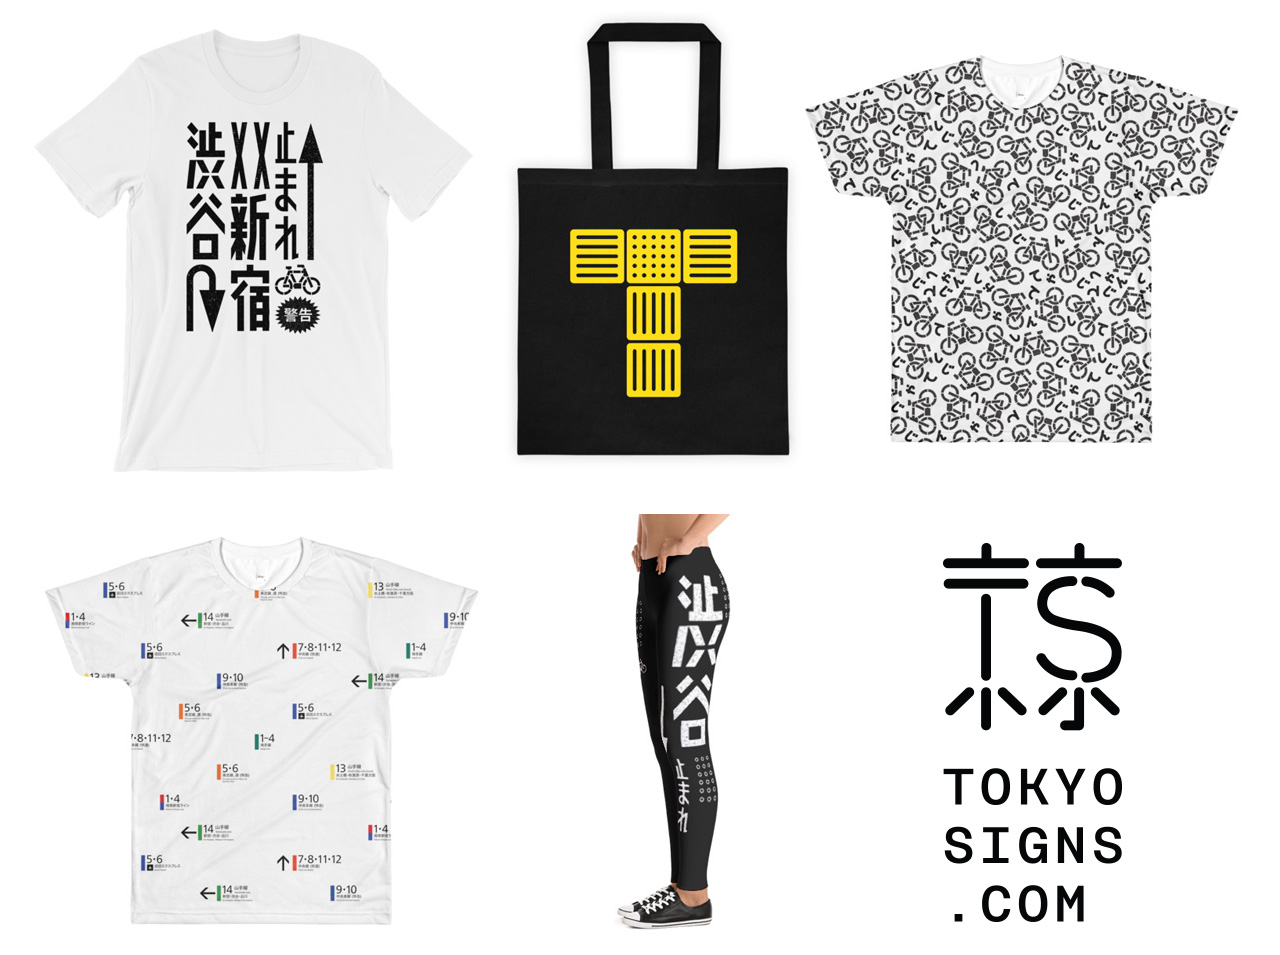 Tokyo Signs - Products inspired by the streets of Tokyo - Tshirt